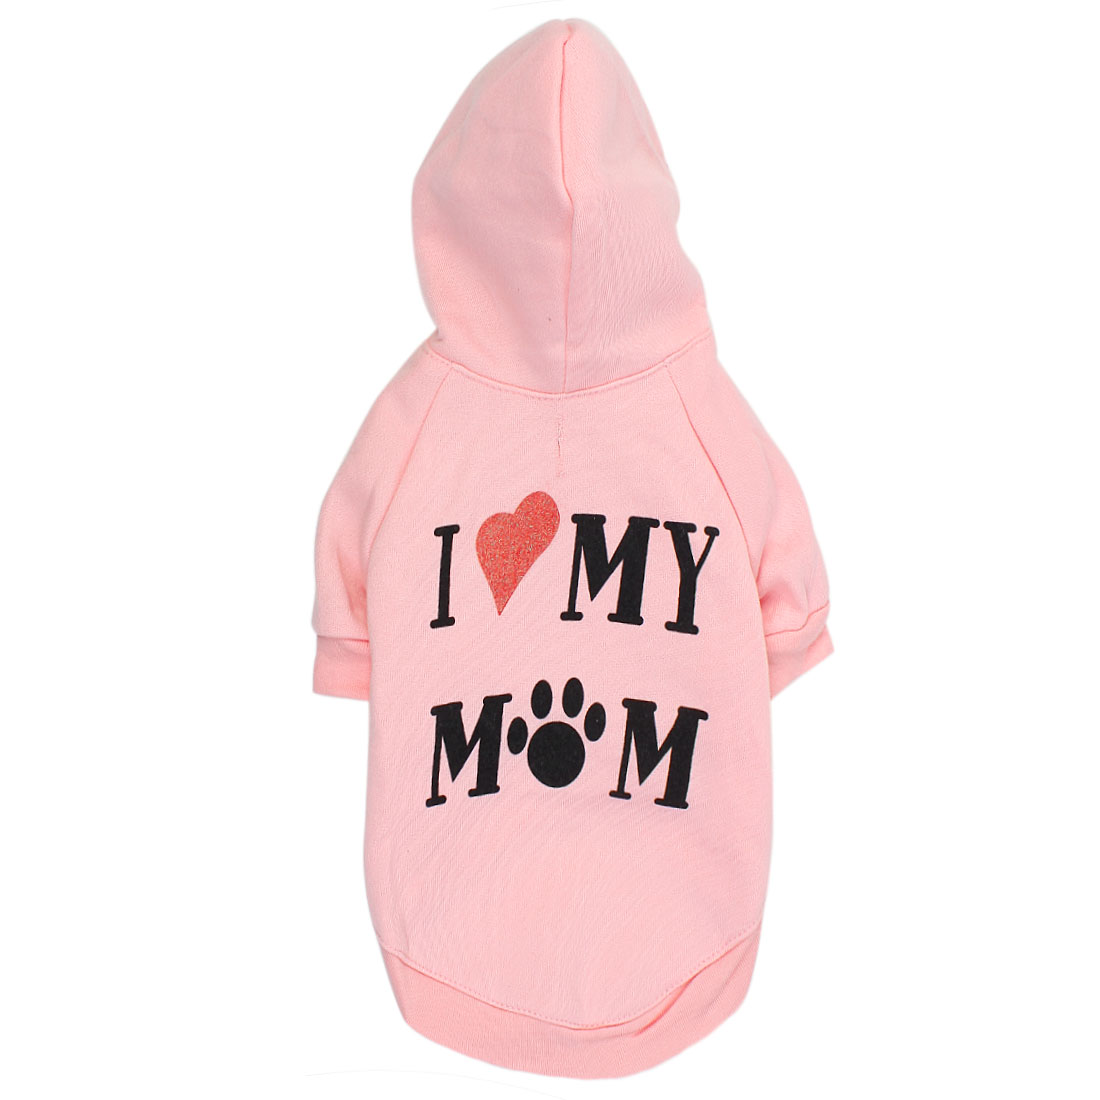 I LOVE MOM Pet Dog Puppy Clothes Hoodie Warm Coat Apparel Costume Pink Size L